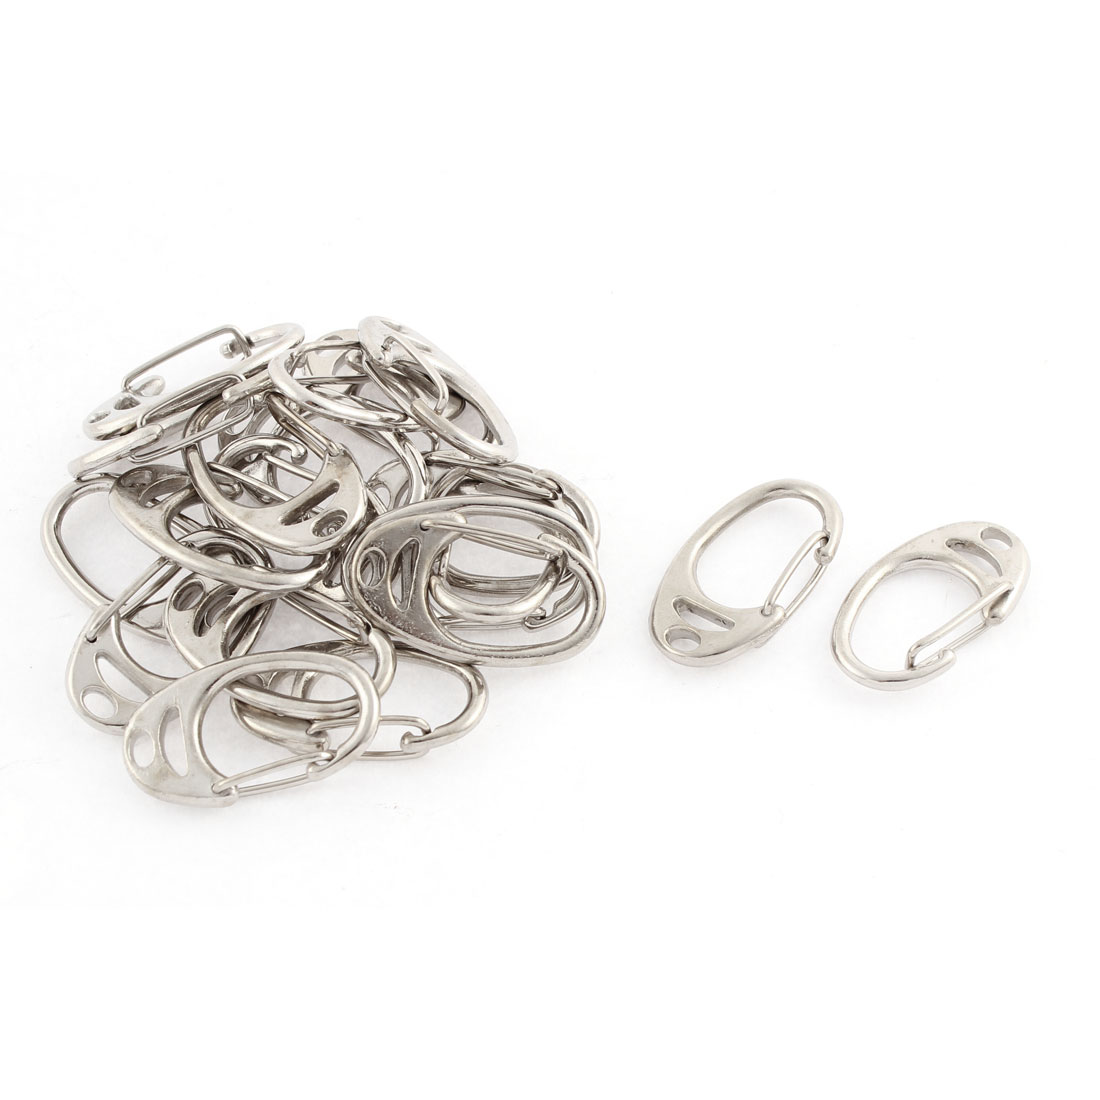 20 Pcs Silver Tone Spring Loaded Lobster Clasps Buckles Hook Clips